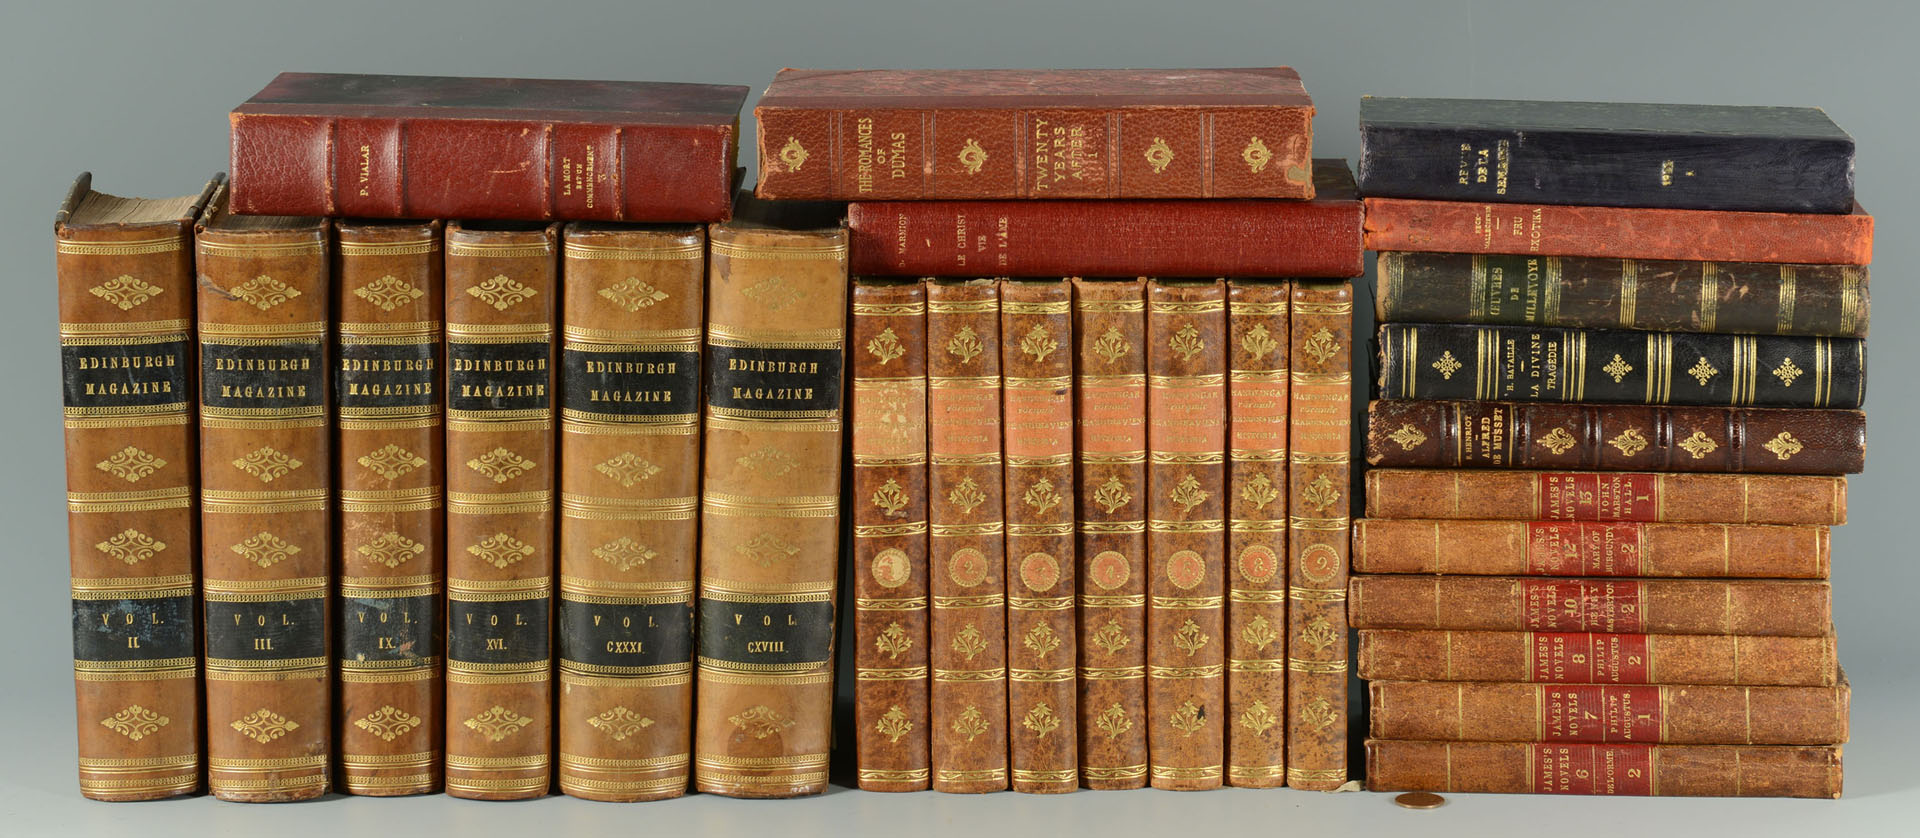 Lot 694: 27 Antique Leatherbound Books, 19th c.